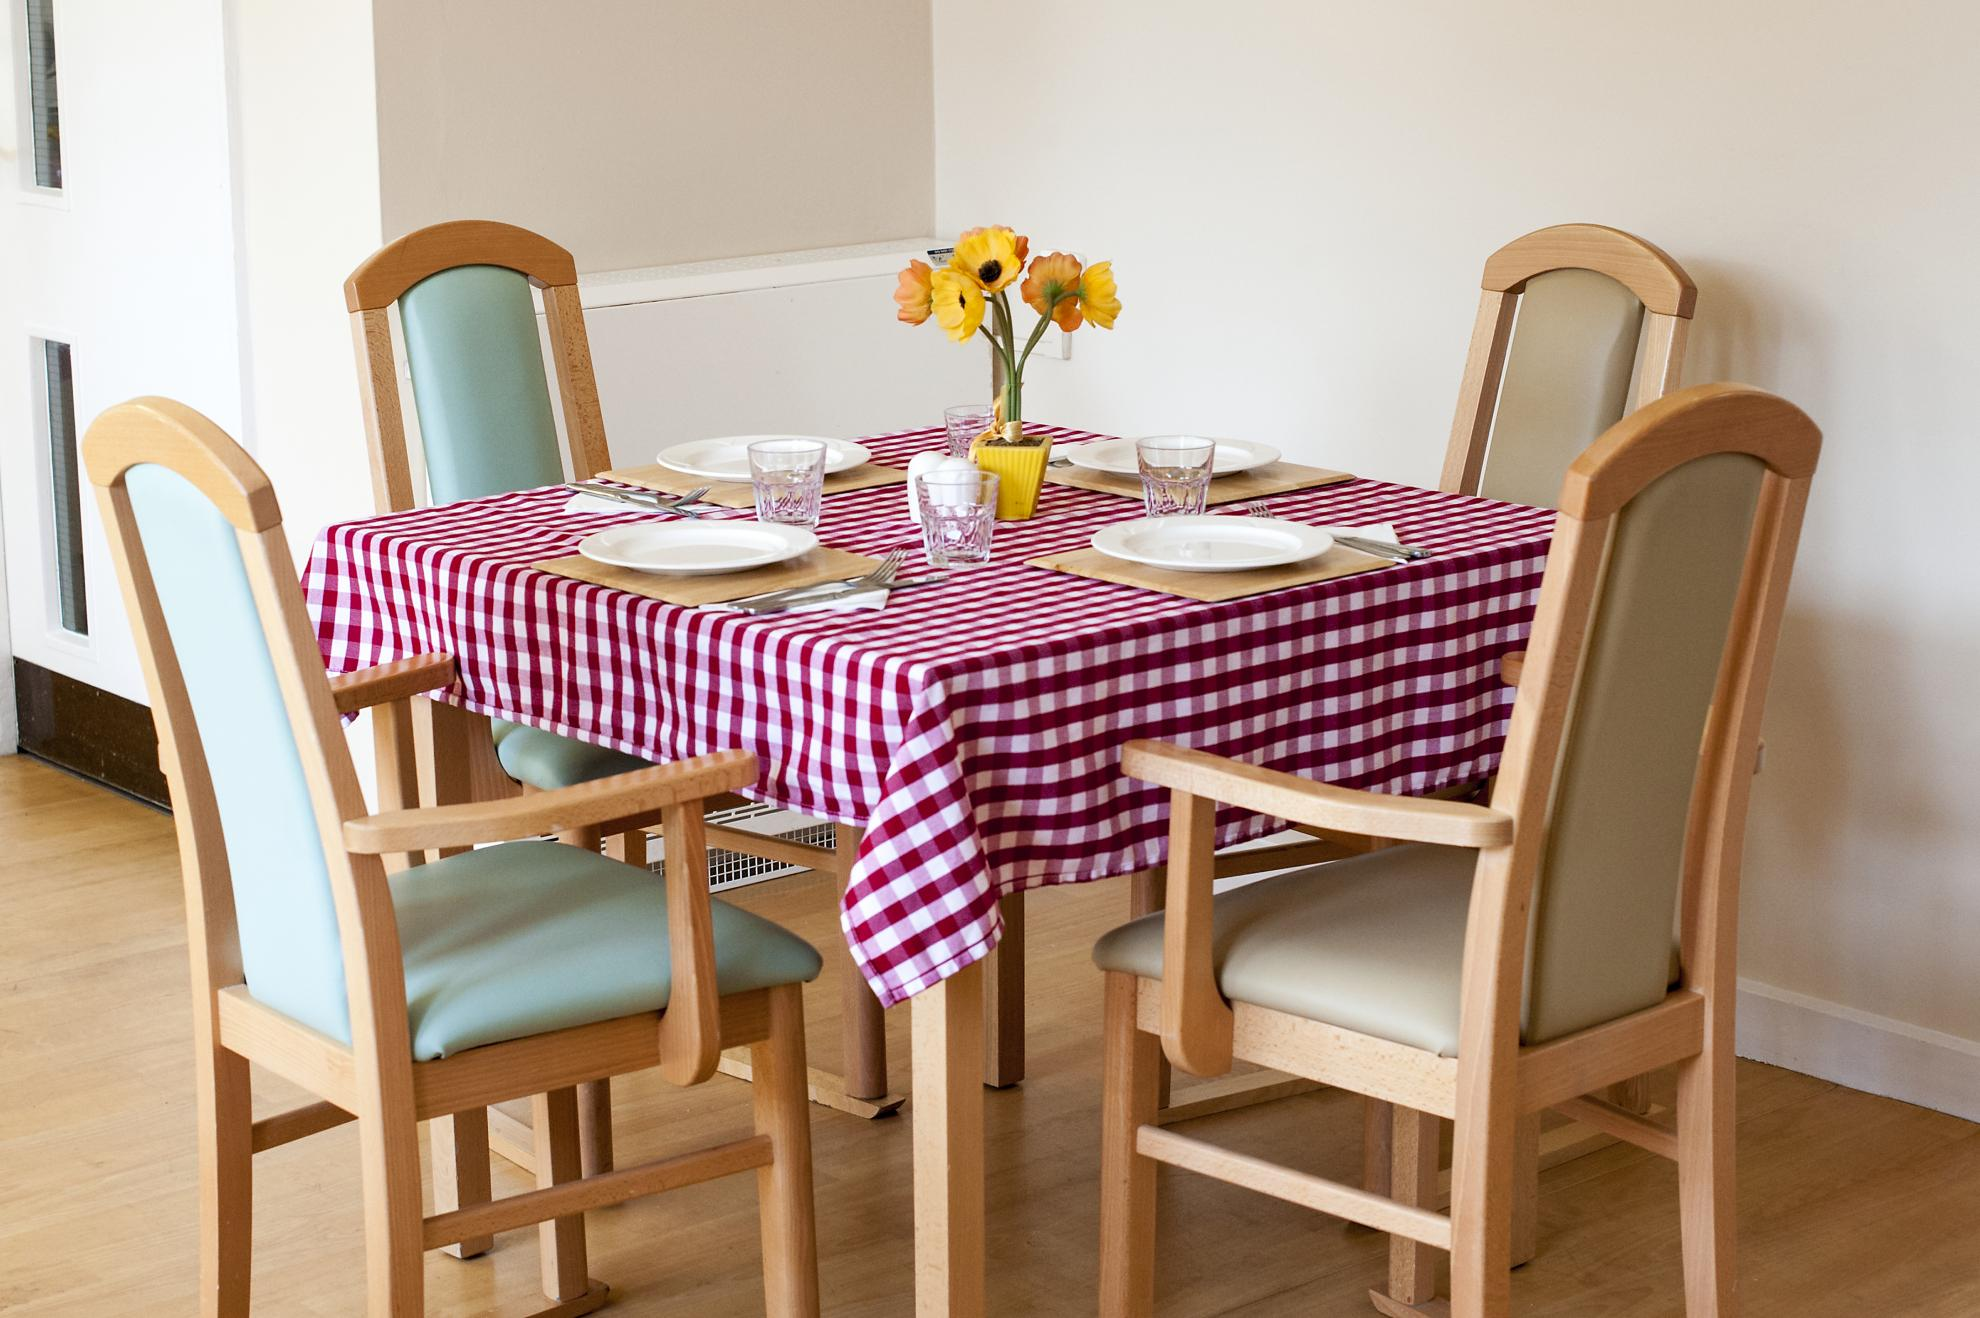 Orchard House Residential Care Home Sanctuary Care